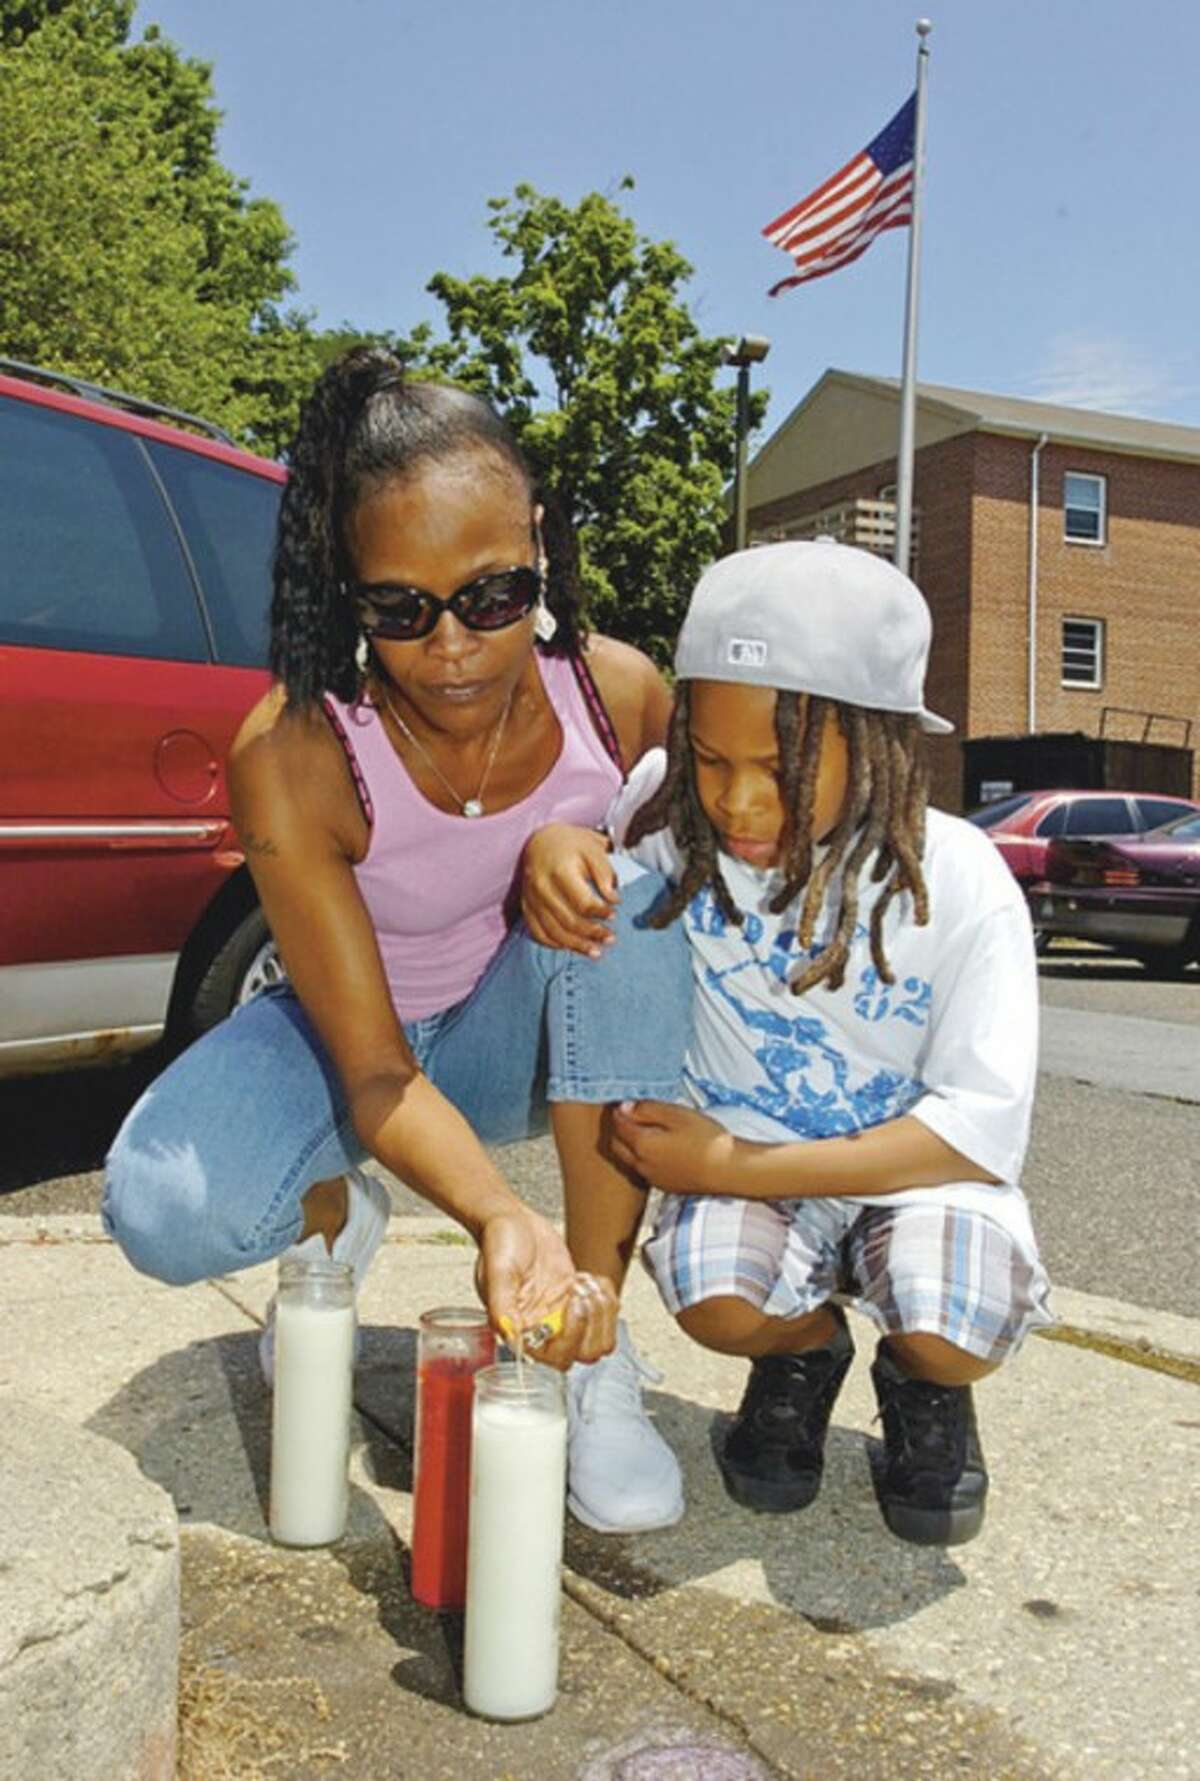 """Hour photo / Erik Trautmann Honoring Dad Natacha Moore and her son, LaRay Moore Jr., 7, lay candles at the site where LaRay Moore Sr. was killed on June 29, 2006. He was gunned down in his car near building 12 at Roodner Court while picking up his son -- then 15-months-old -- from his aunt's apartment. """"I can close my eyes, and it feels like it just happened yesterday,"""" Natacha Moore said. Although hundreds of people were outside when LaRay Moore Sr. was killed, police have not received viable information from any witnesses. The case was recently reassigned to Detective Shannon Sherry. Police are asking anyone with information on the case to call (203) 854-3011."""